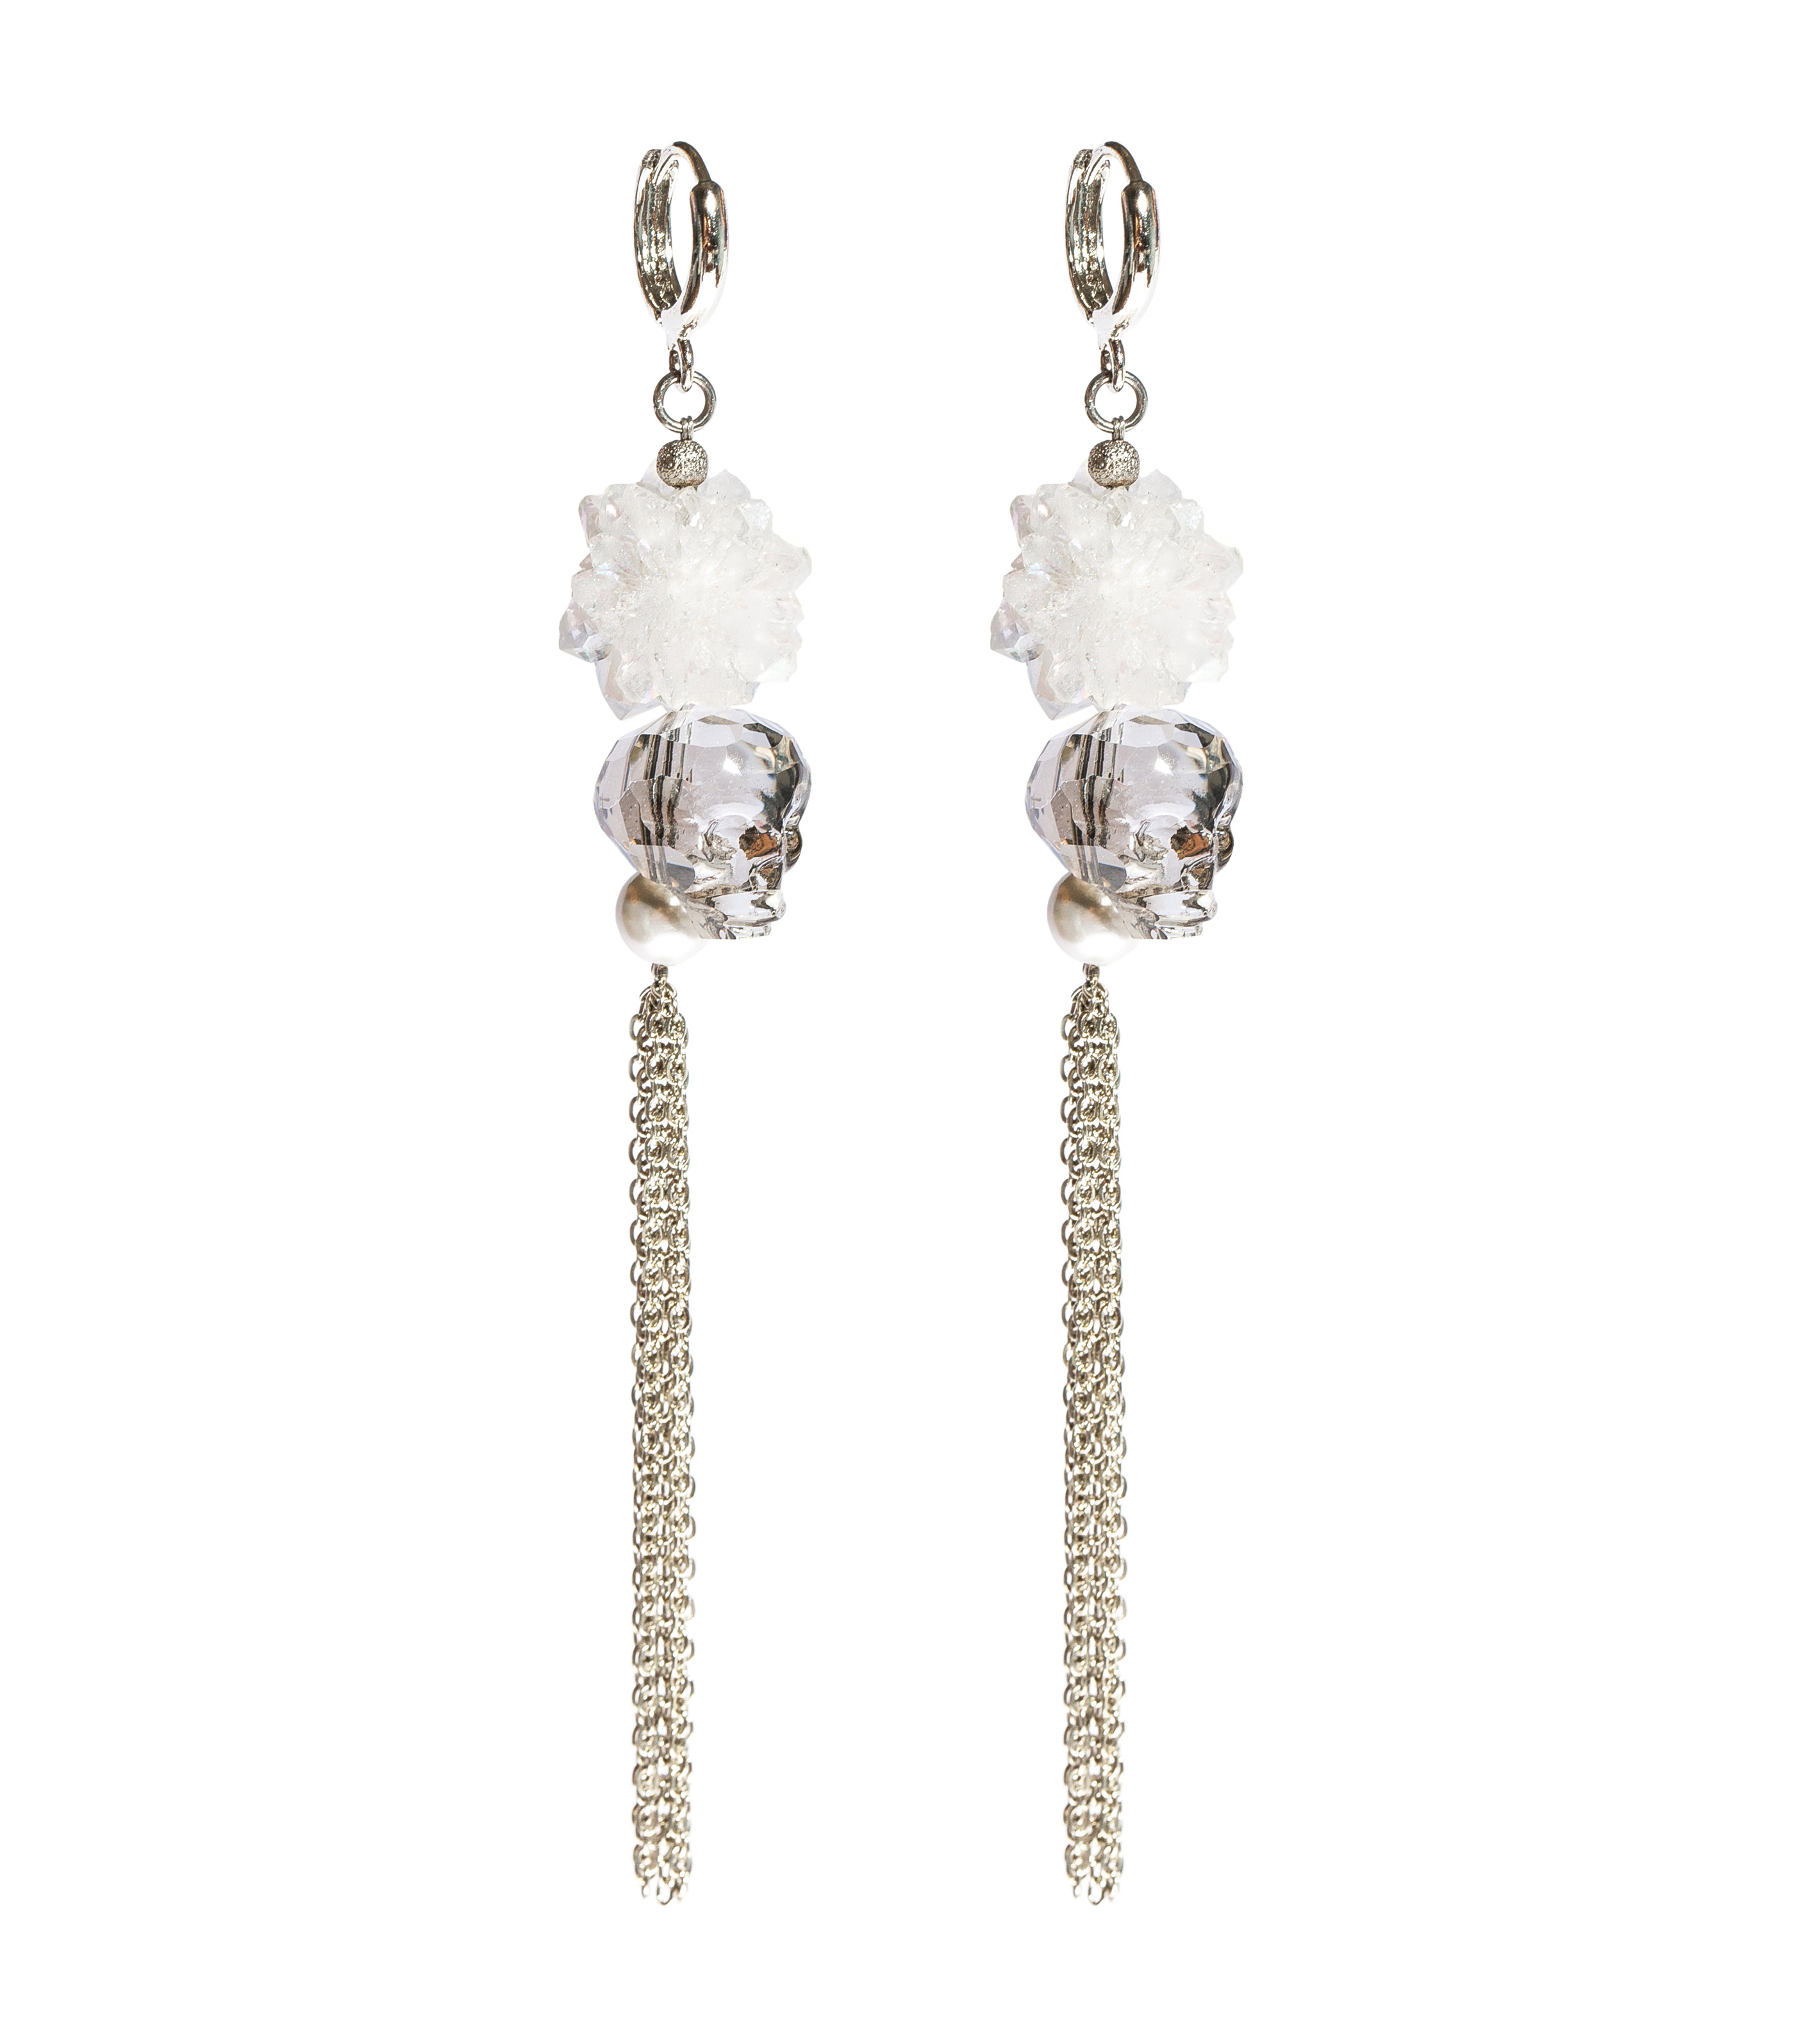 010-estelle-earrings-golovina-accessories-01